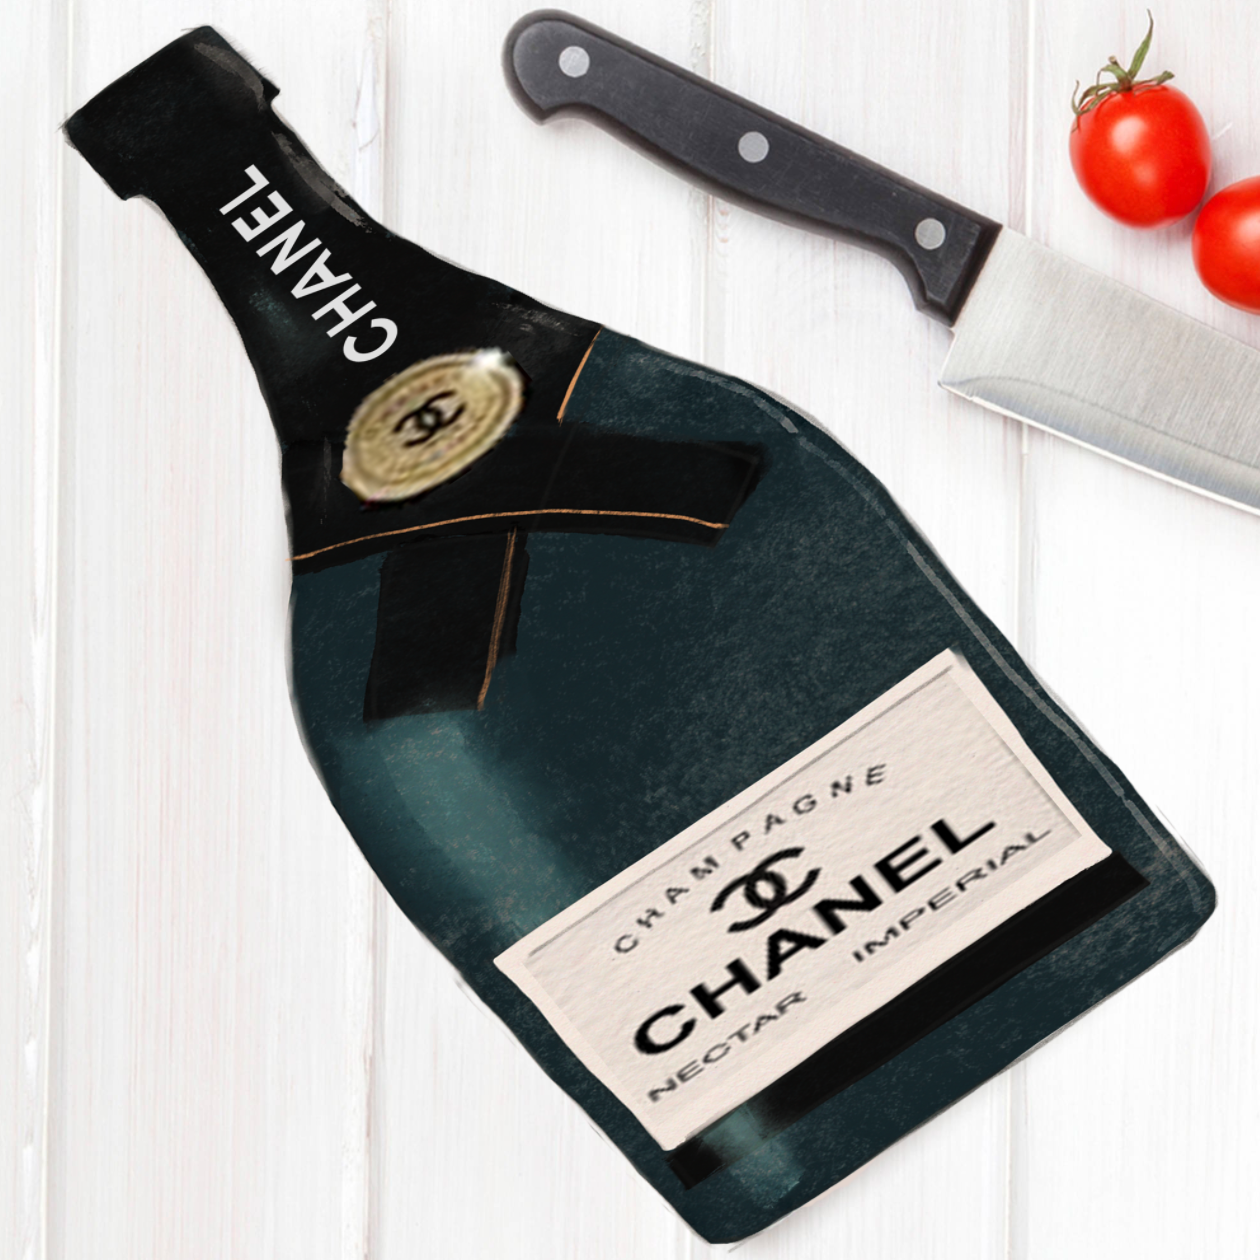 Chanel champagne cutting board